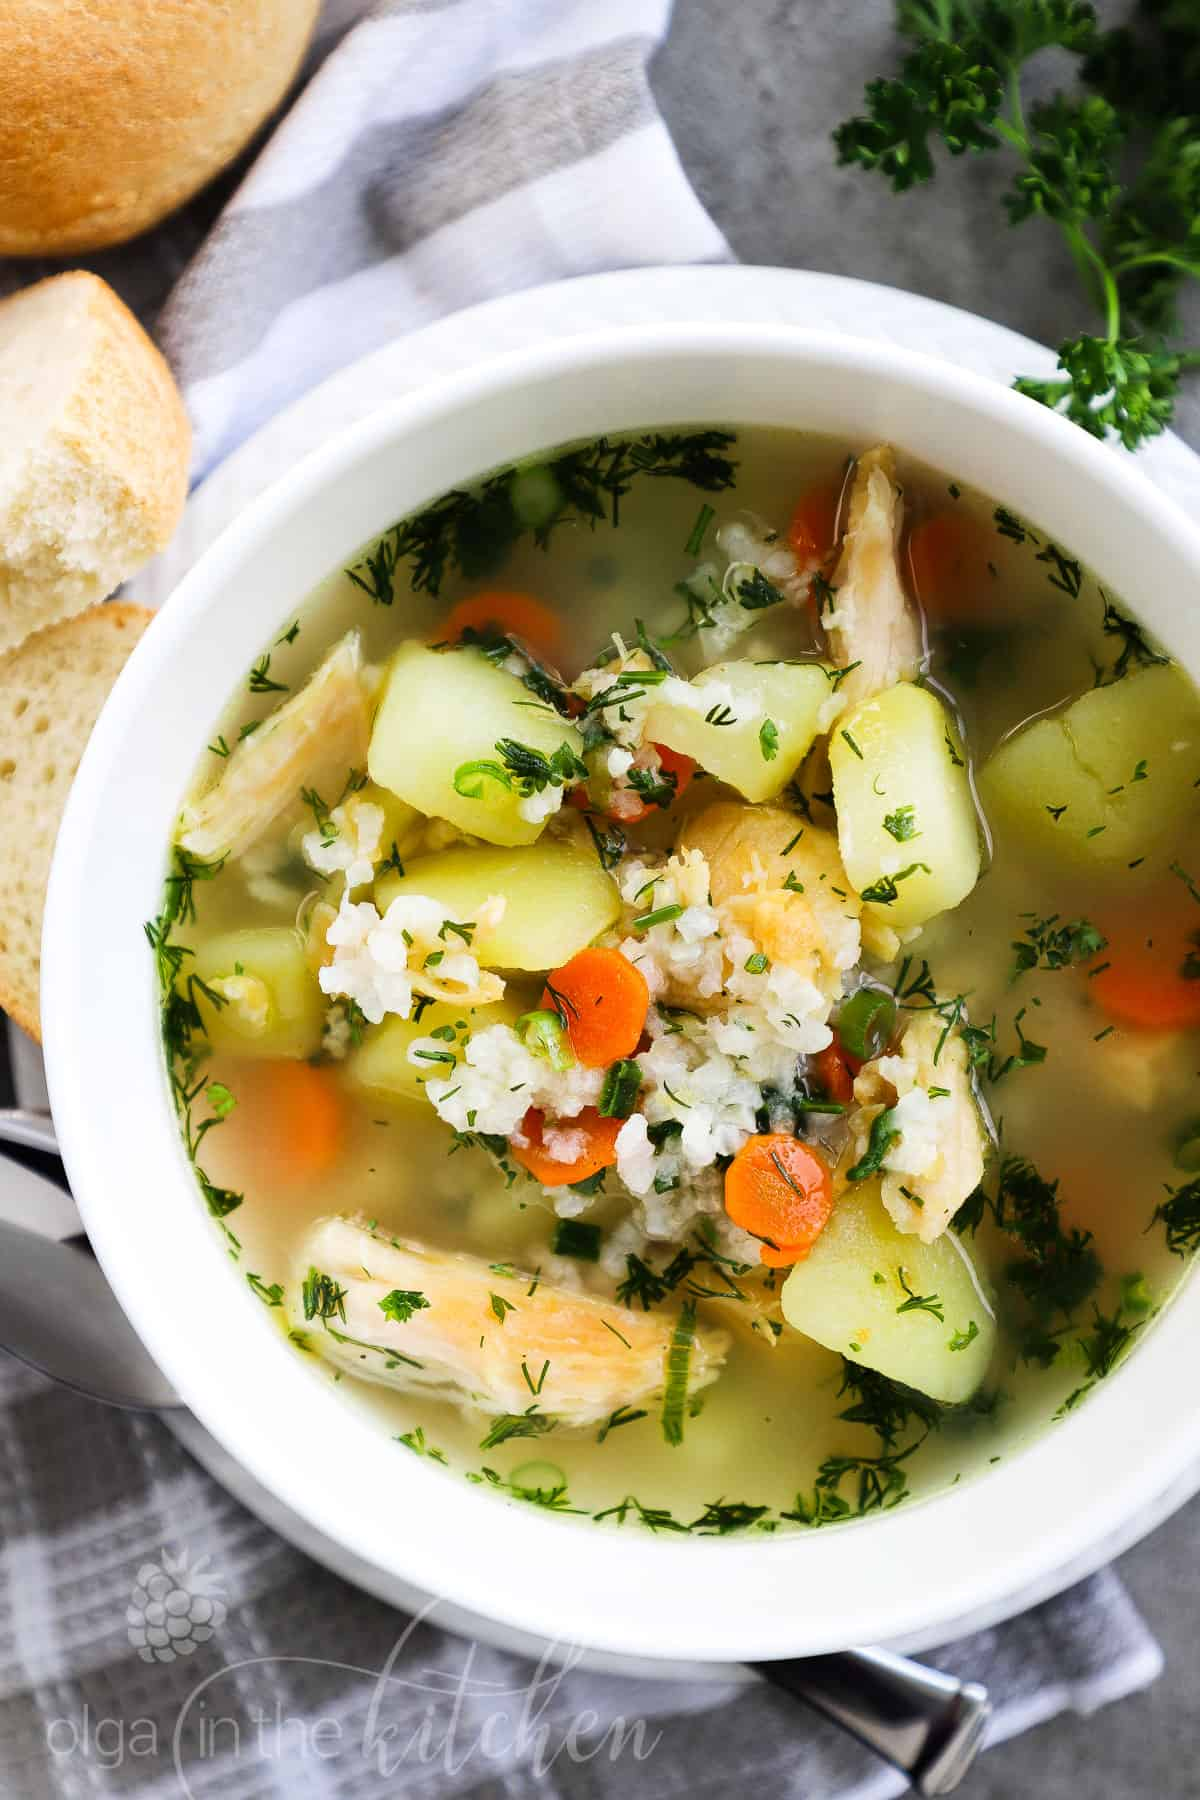 Easy Chicken and Rice Soup has simple ingredients, but it's so comforting and hearty. It is quick and easy, loaded with fresh vegetables and rice, making it a great weeknight meal. #chickensoup #chickenricesoup #soup #olgainthekitchen #easyrecipe #dinner #potatosoup #chickenbreast #chicken